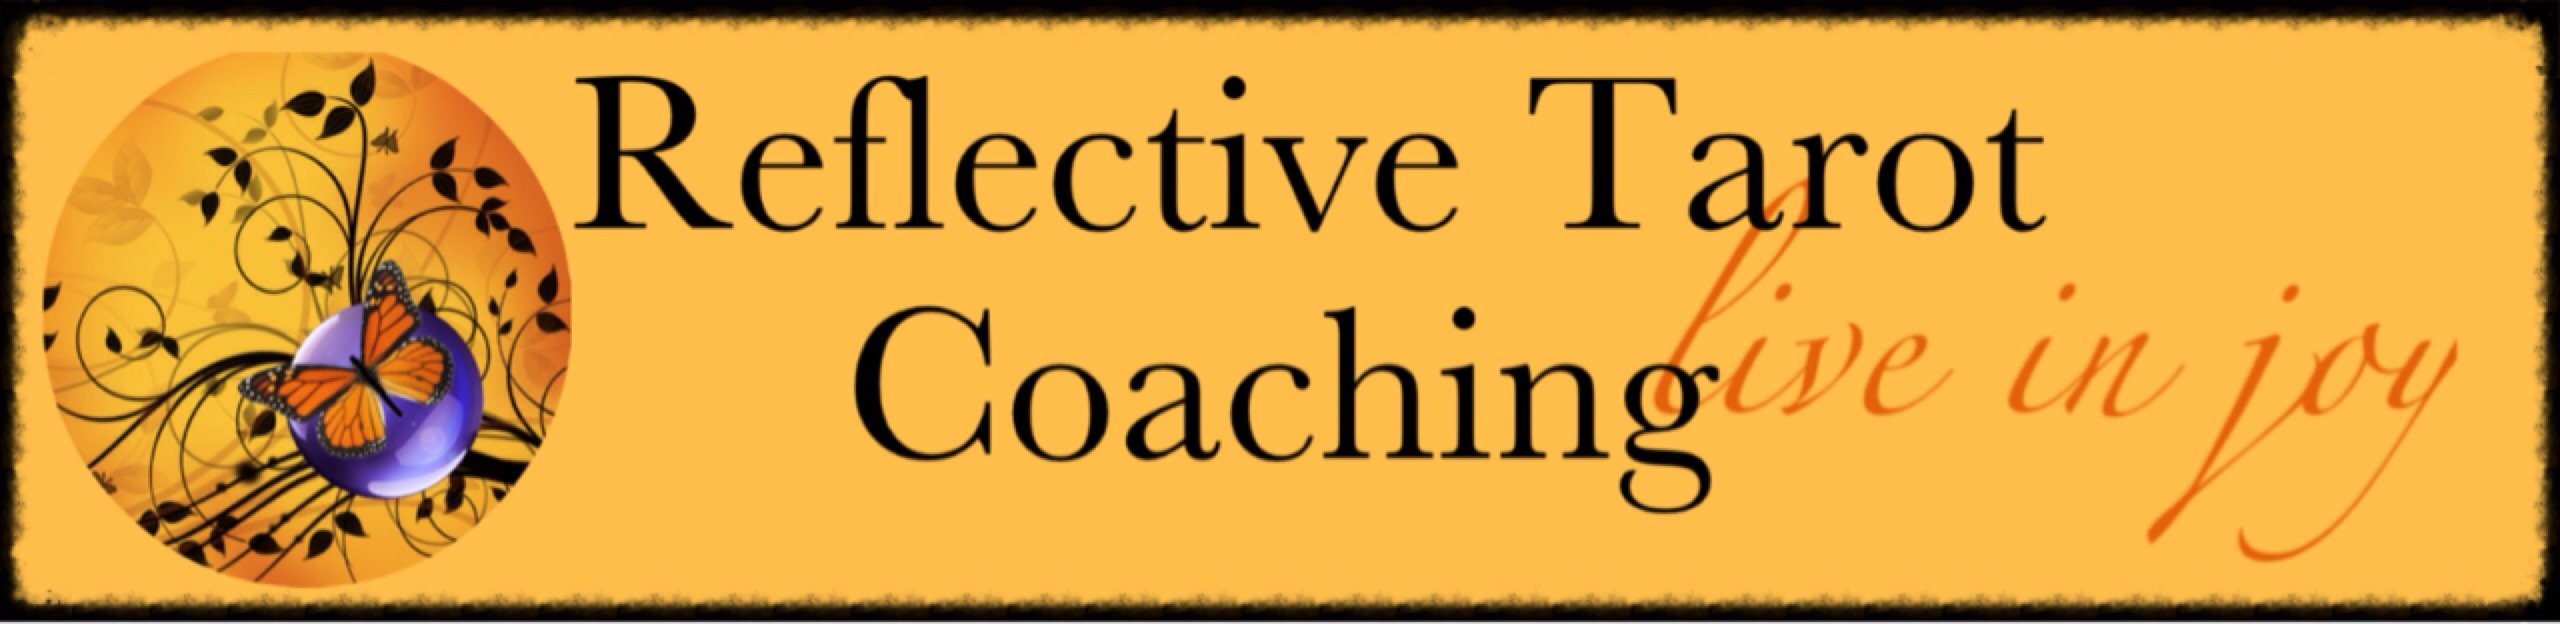 Reflective Tarot Coaching by Vaike